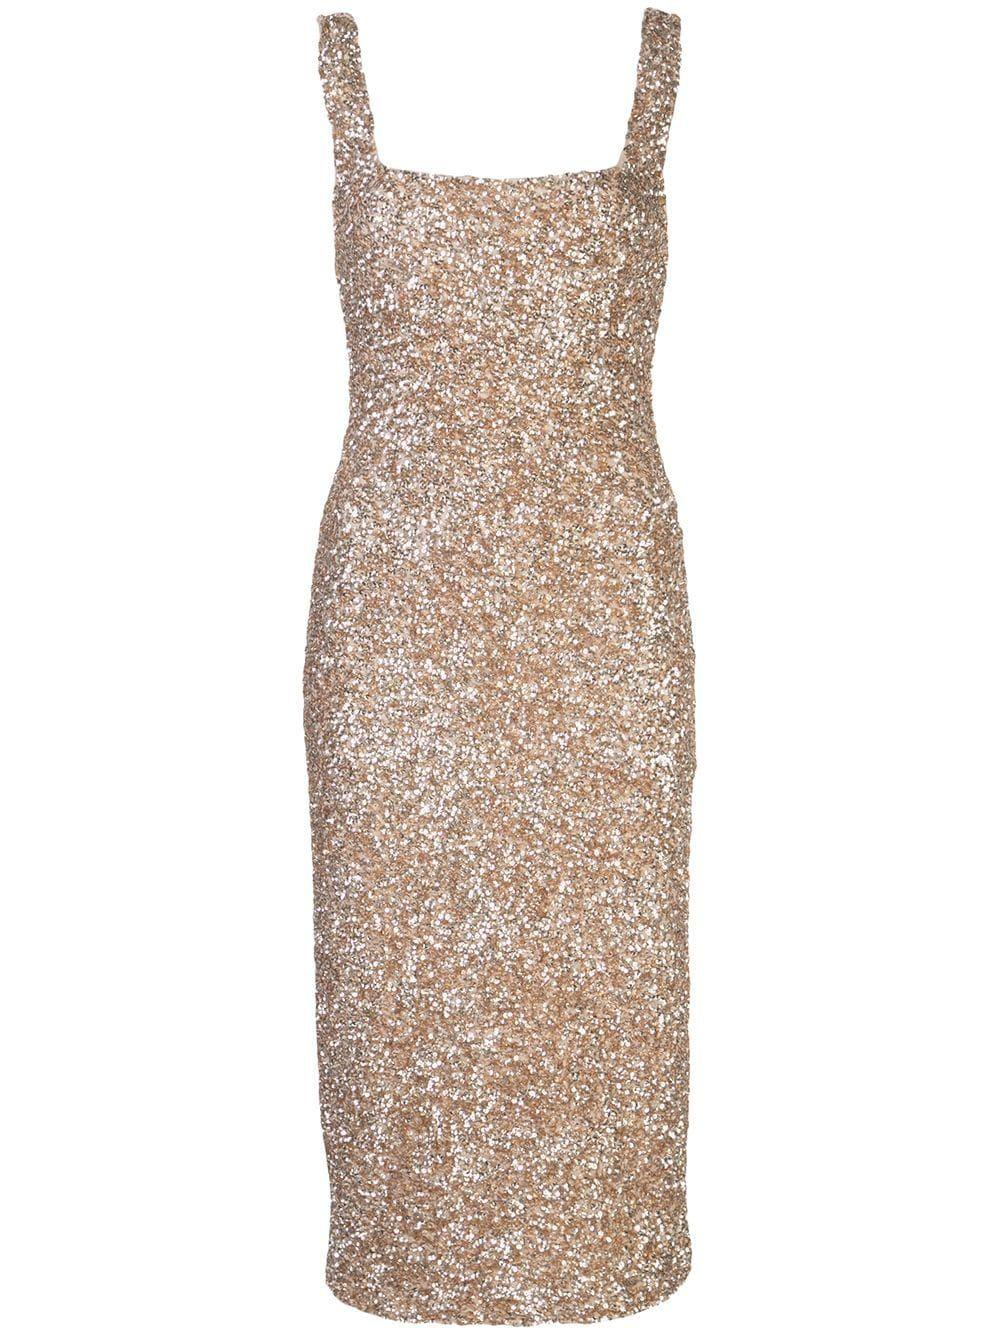 Helen Sequin Fitted Square Neck Dress